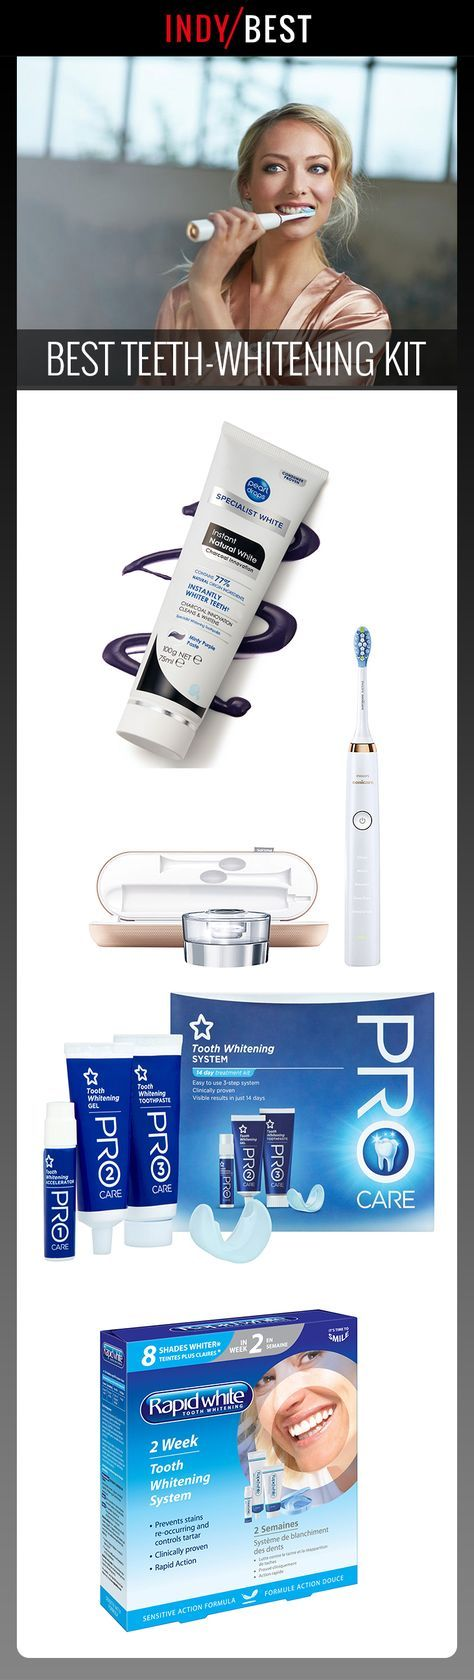 Keep your teeth looking pearly white with the help of one of these DIY kits. We've tested them out to bring you the best, find them here: http://ind.pn/2nZz1JH